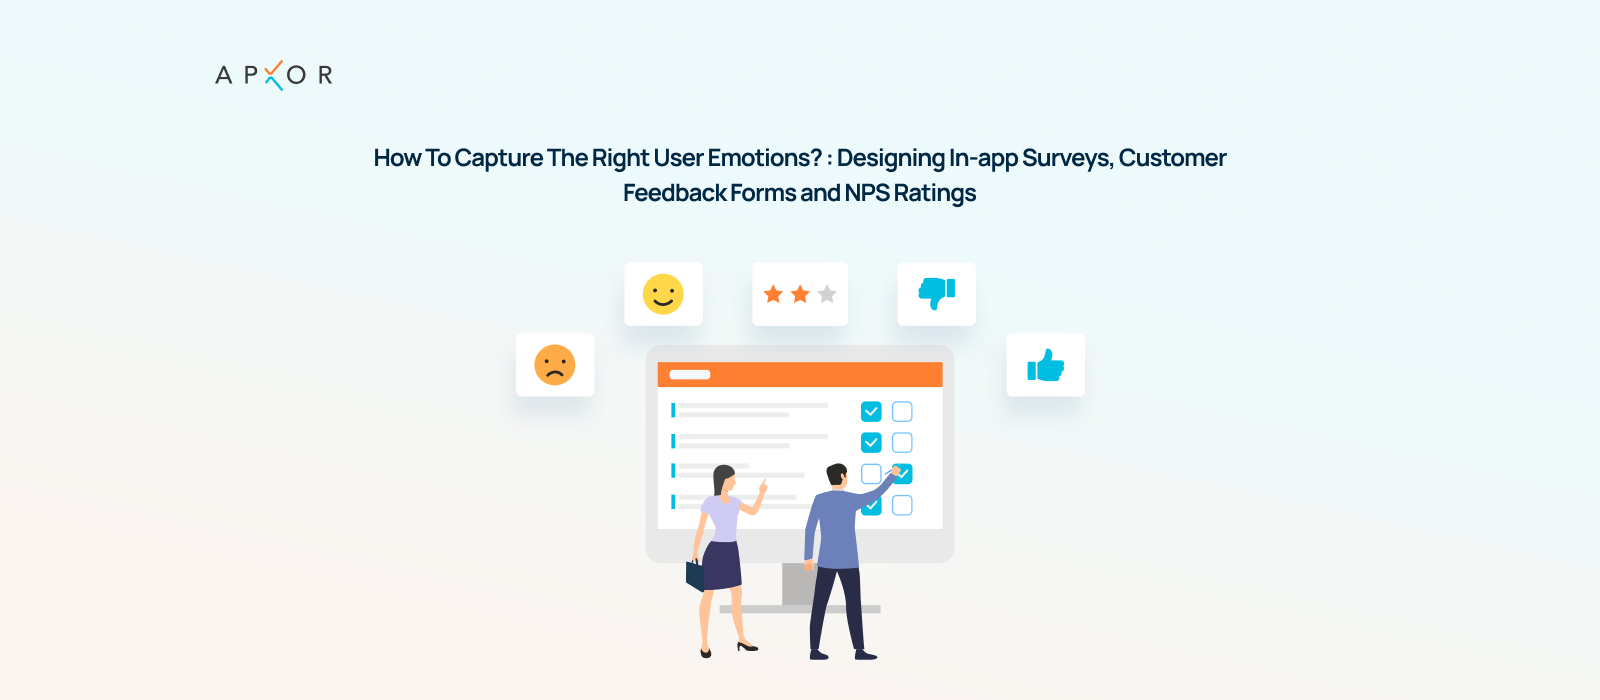 How To Capture The Right User Emotions? Designing In-app Surveys, Customer Feedback Forms and NPS Ratings